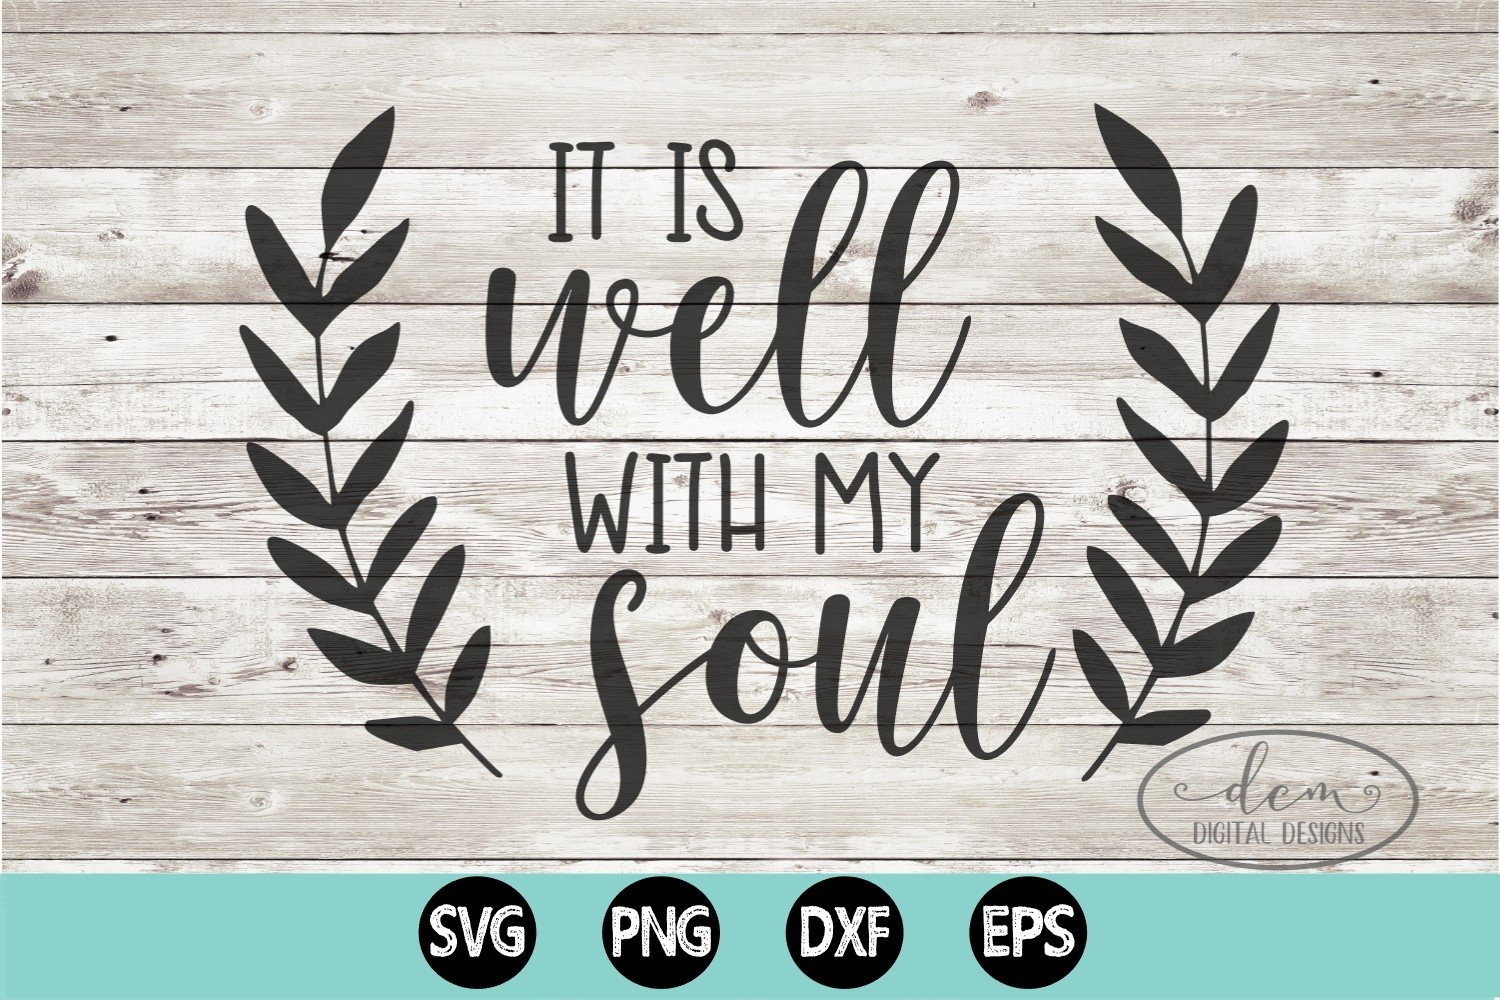 It Is Well With My Soul Svg Png Dxf Eps Cut File 920698 Cut Files Design Bundles